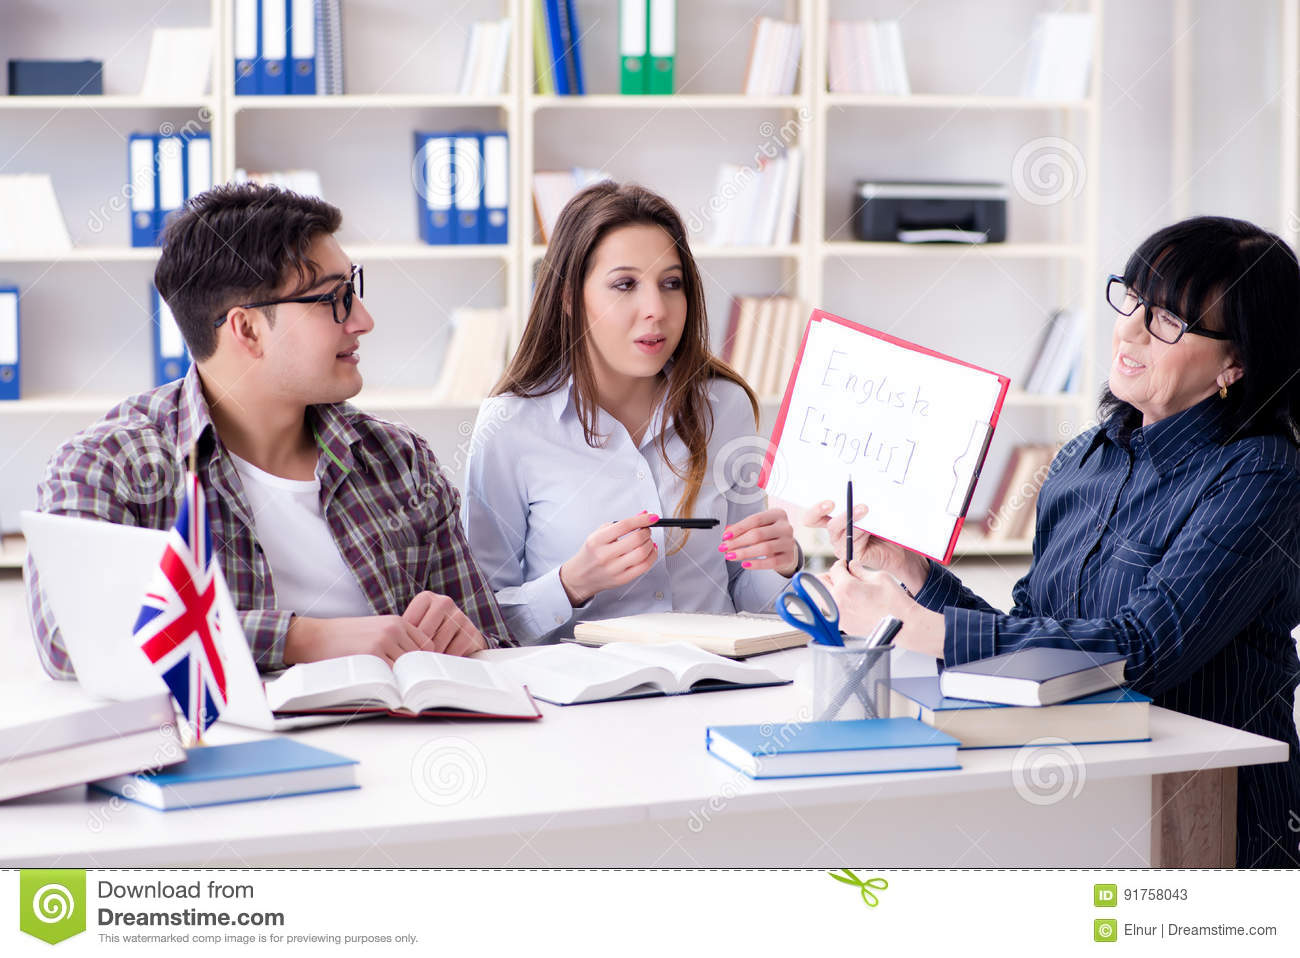 english international language There is no official definition of global or world language, but it essentially refers to a language that is learned and spoken internationally, and is characterized not only by the.